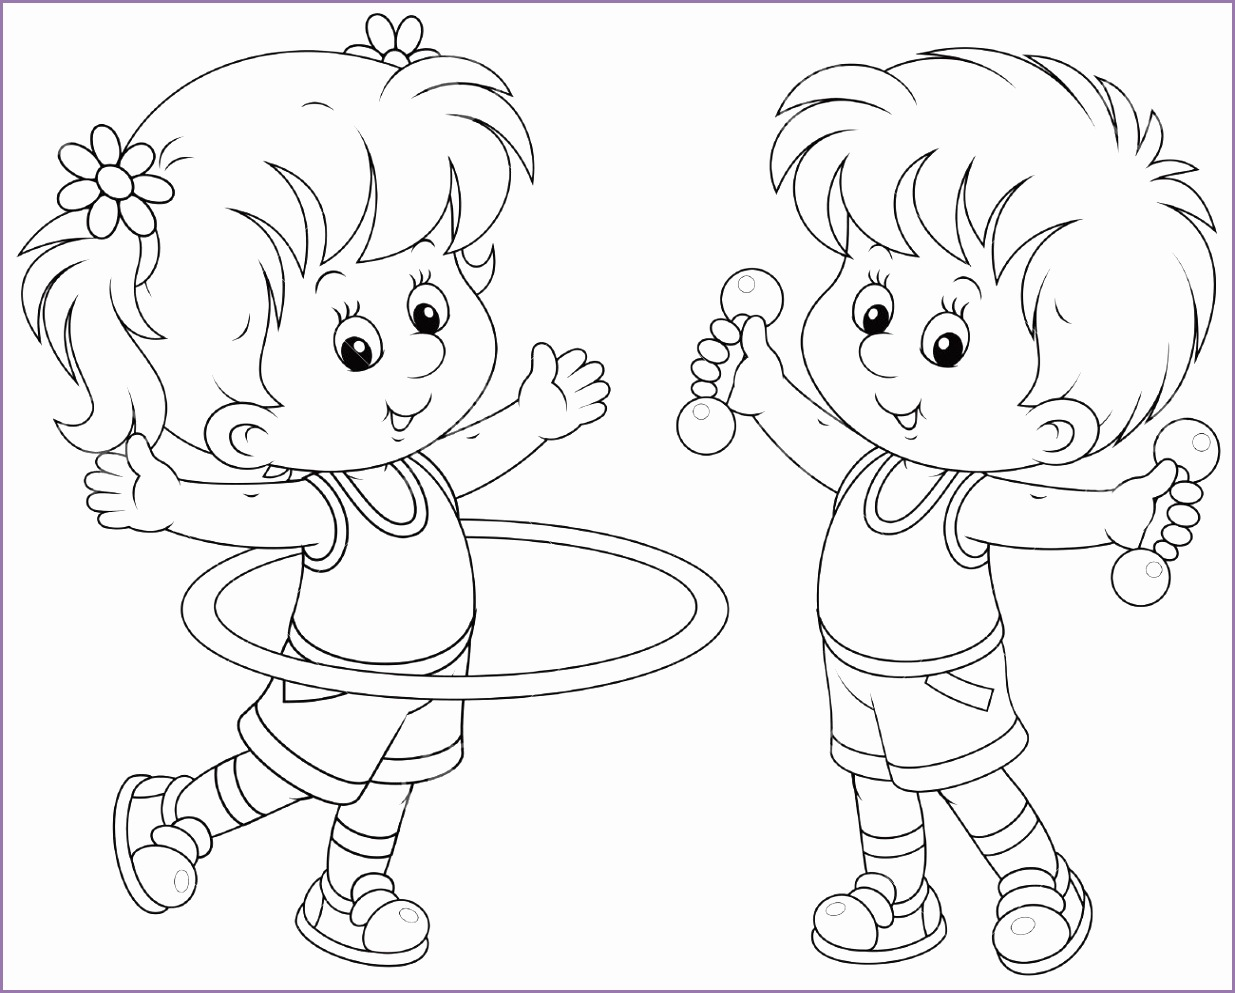 Workout clipart line art. Exercise clip black and